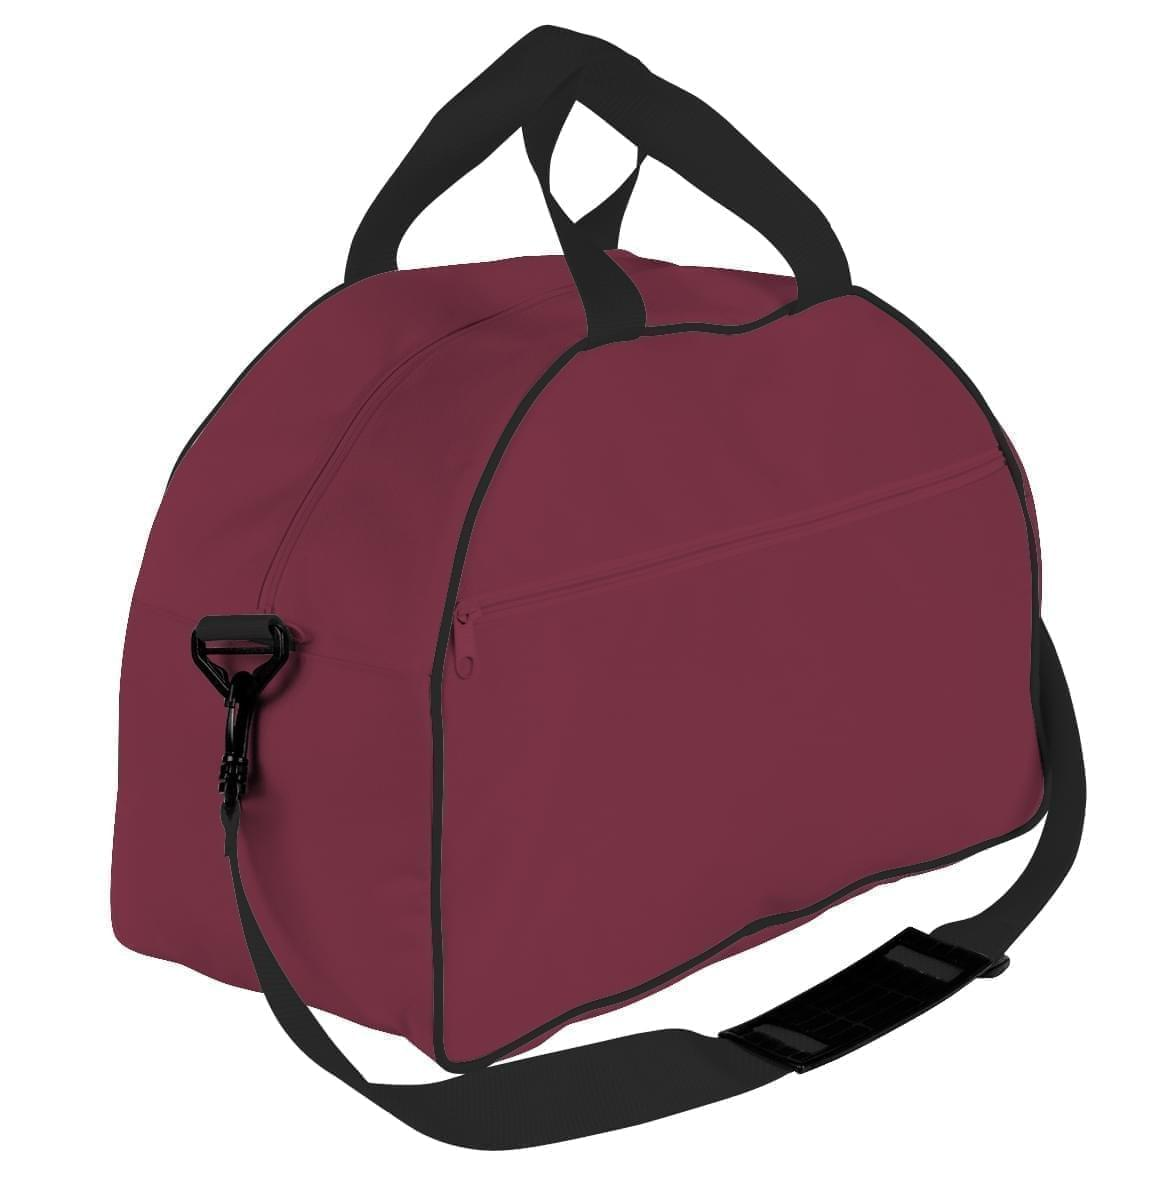 USA Made Nylon Poly Weekender Duffel Bags, Burgundy-Black, 6PKV32JAQR